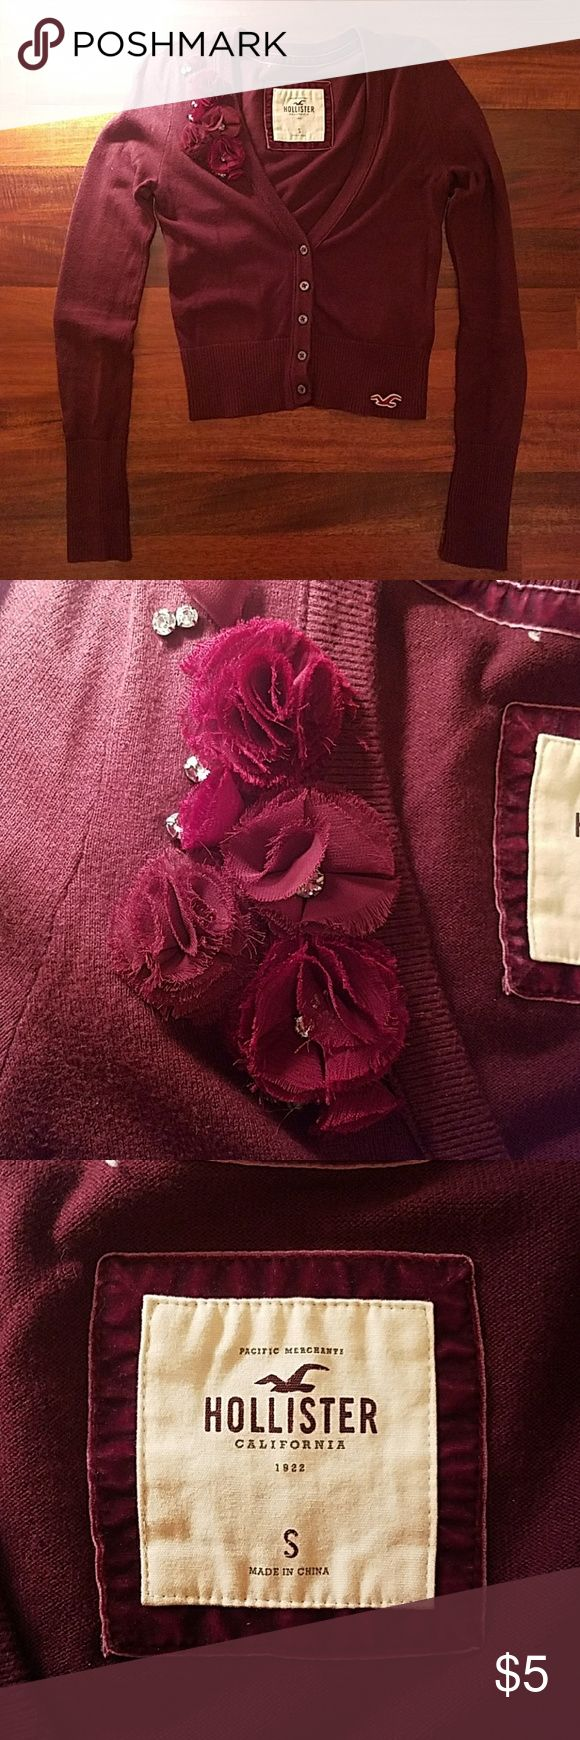 HOLLISTER Maroon Cardigan rhinestones flowers HOLLISTER Classic maroon cardigan with chiffon flowers and rhinestones. Perfect with a white tank and jeans or a nice dress. In good condition. Hollister Sweaters Cardigans